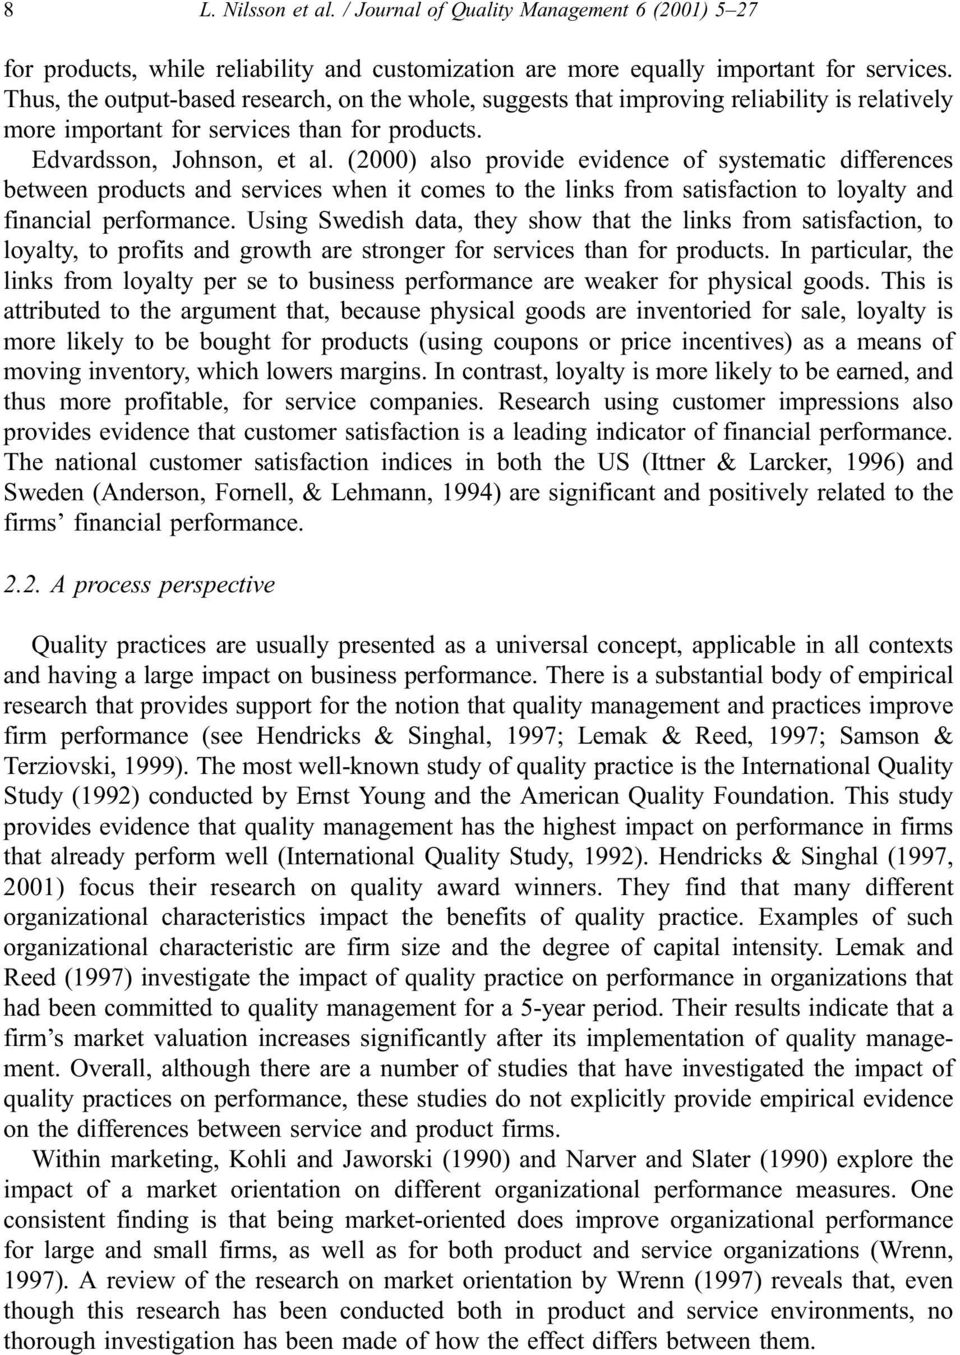 (2000) also provide evidence of systematic differences between products and services when it comes to the links from satisfaction to loyalty and financial performance.